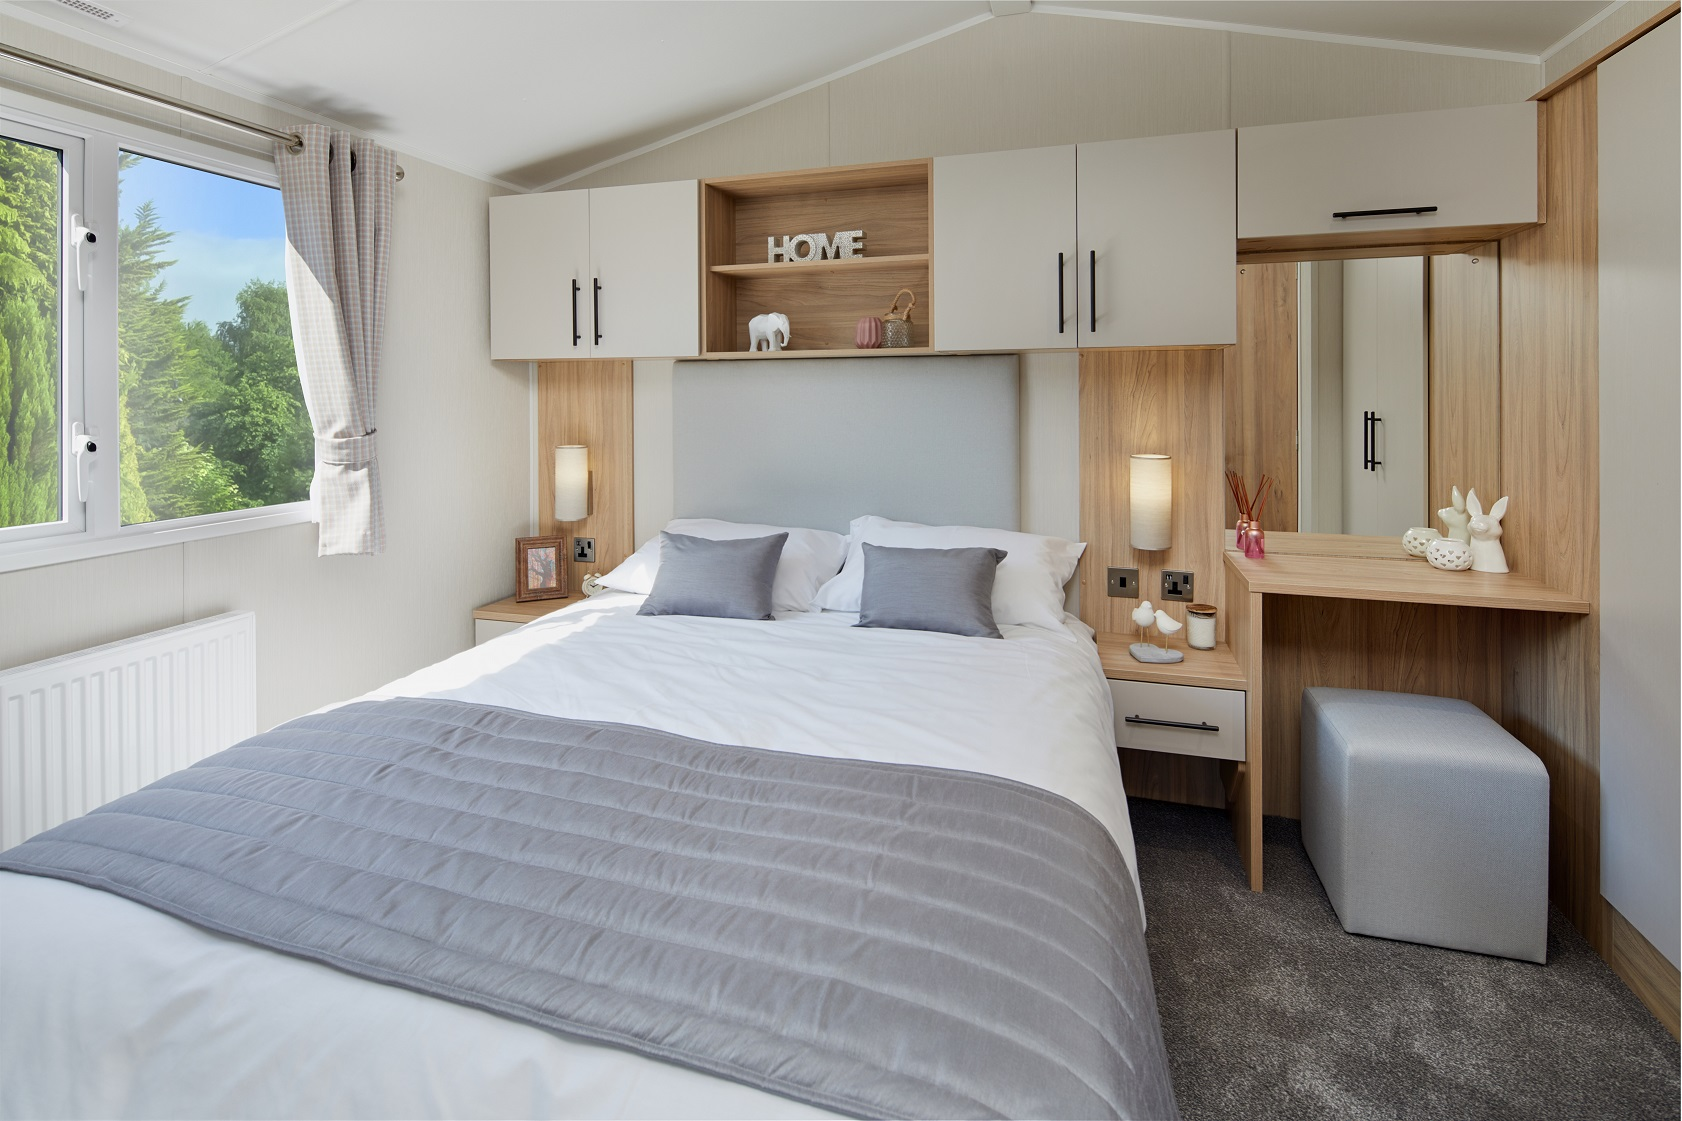 Willerby Manor: New Static Caravans and Holiday Homes for Sale, Available at Factory Large Image 4